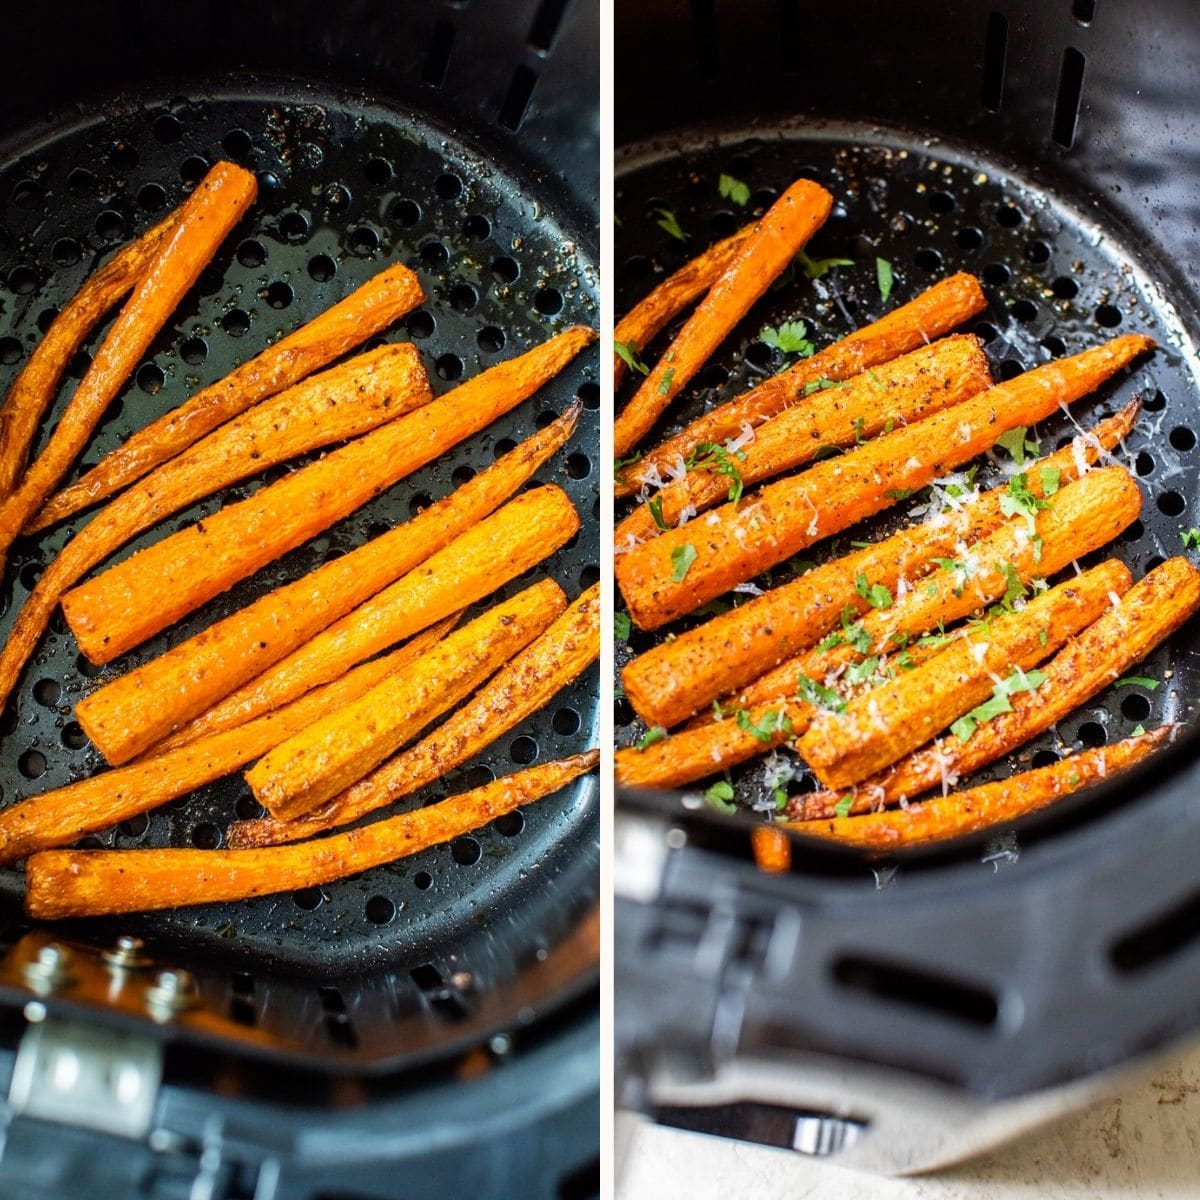 carrot sticks in an air fryer